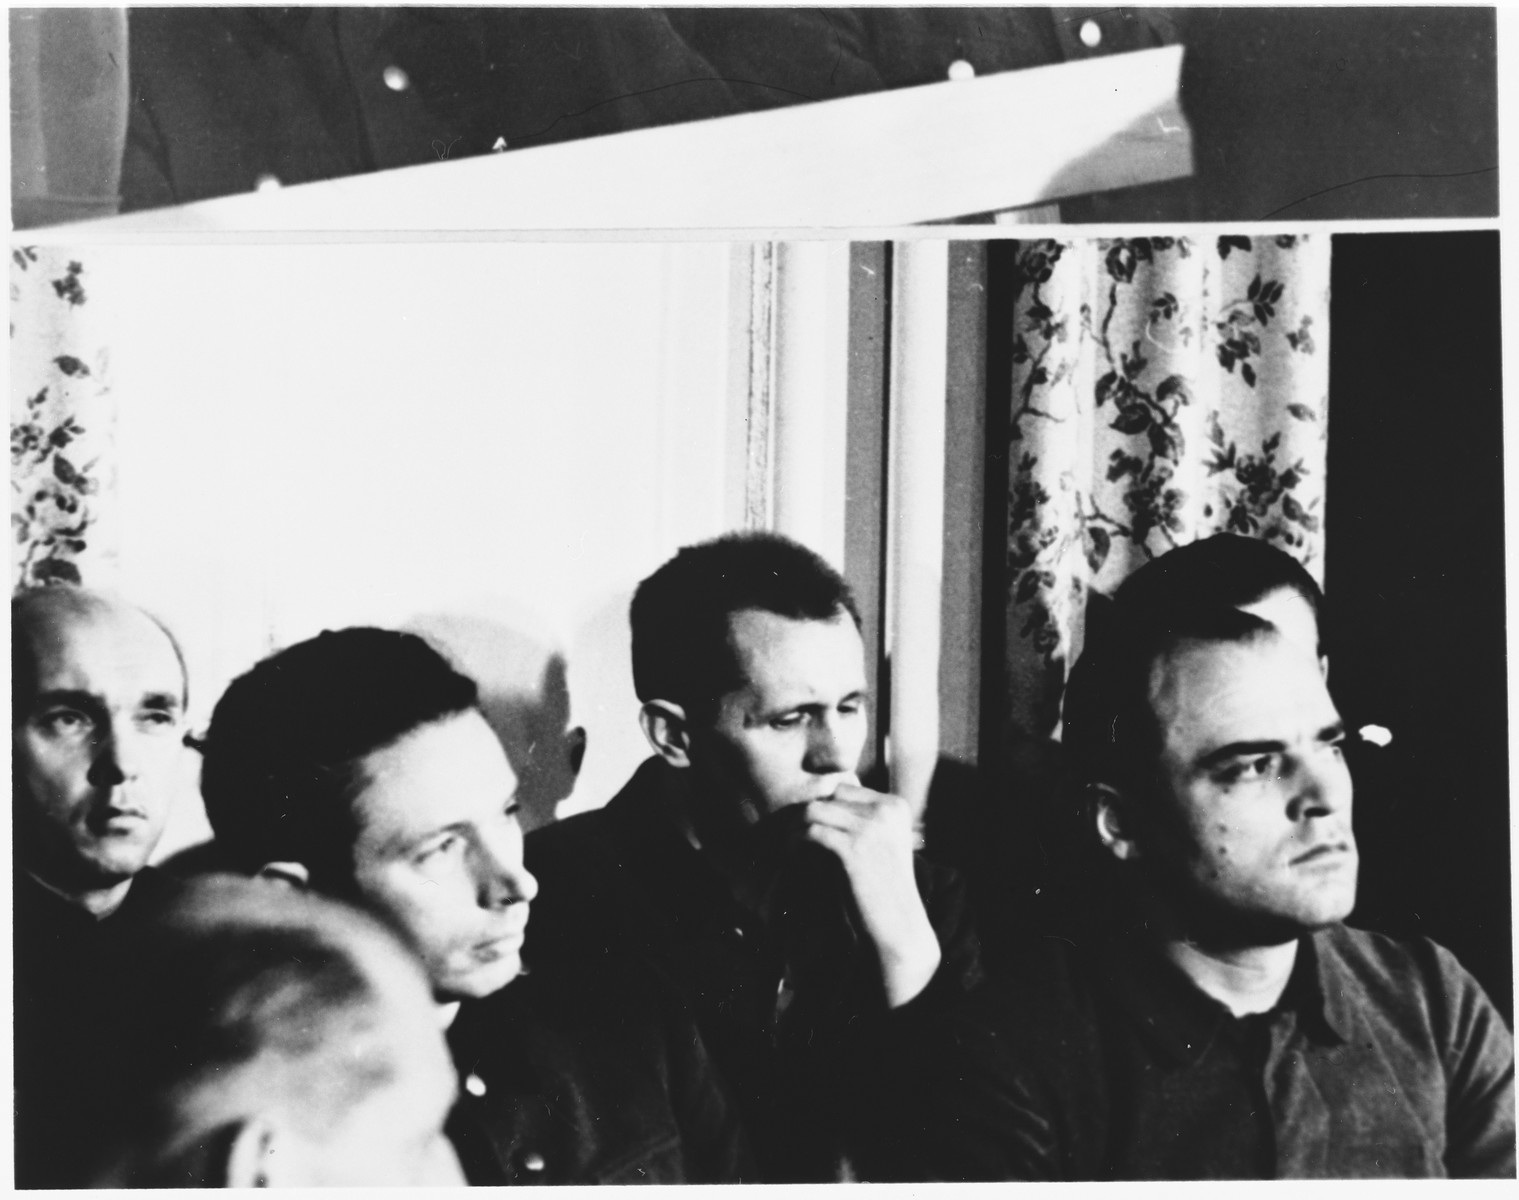 Defendants in the dock at the Sachsenhausen concentration camp war crimes trial in Berlin.   From left to right are: Menne Saathoff, Heinz (Heinrich Friedrich) Baumkoetter, Paul Sakowski, and Ludwig Rehn.